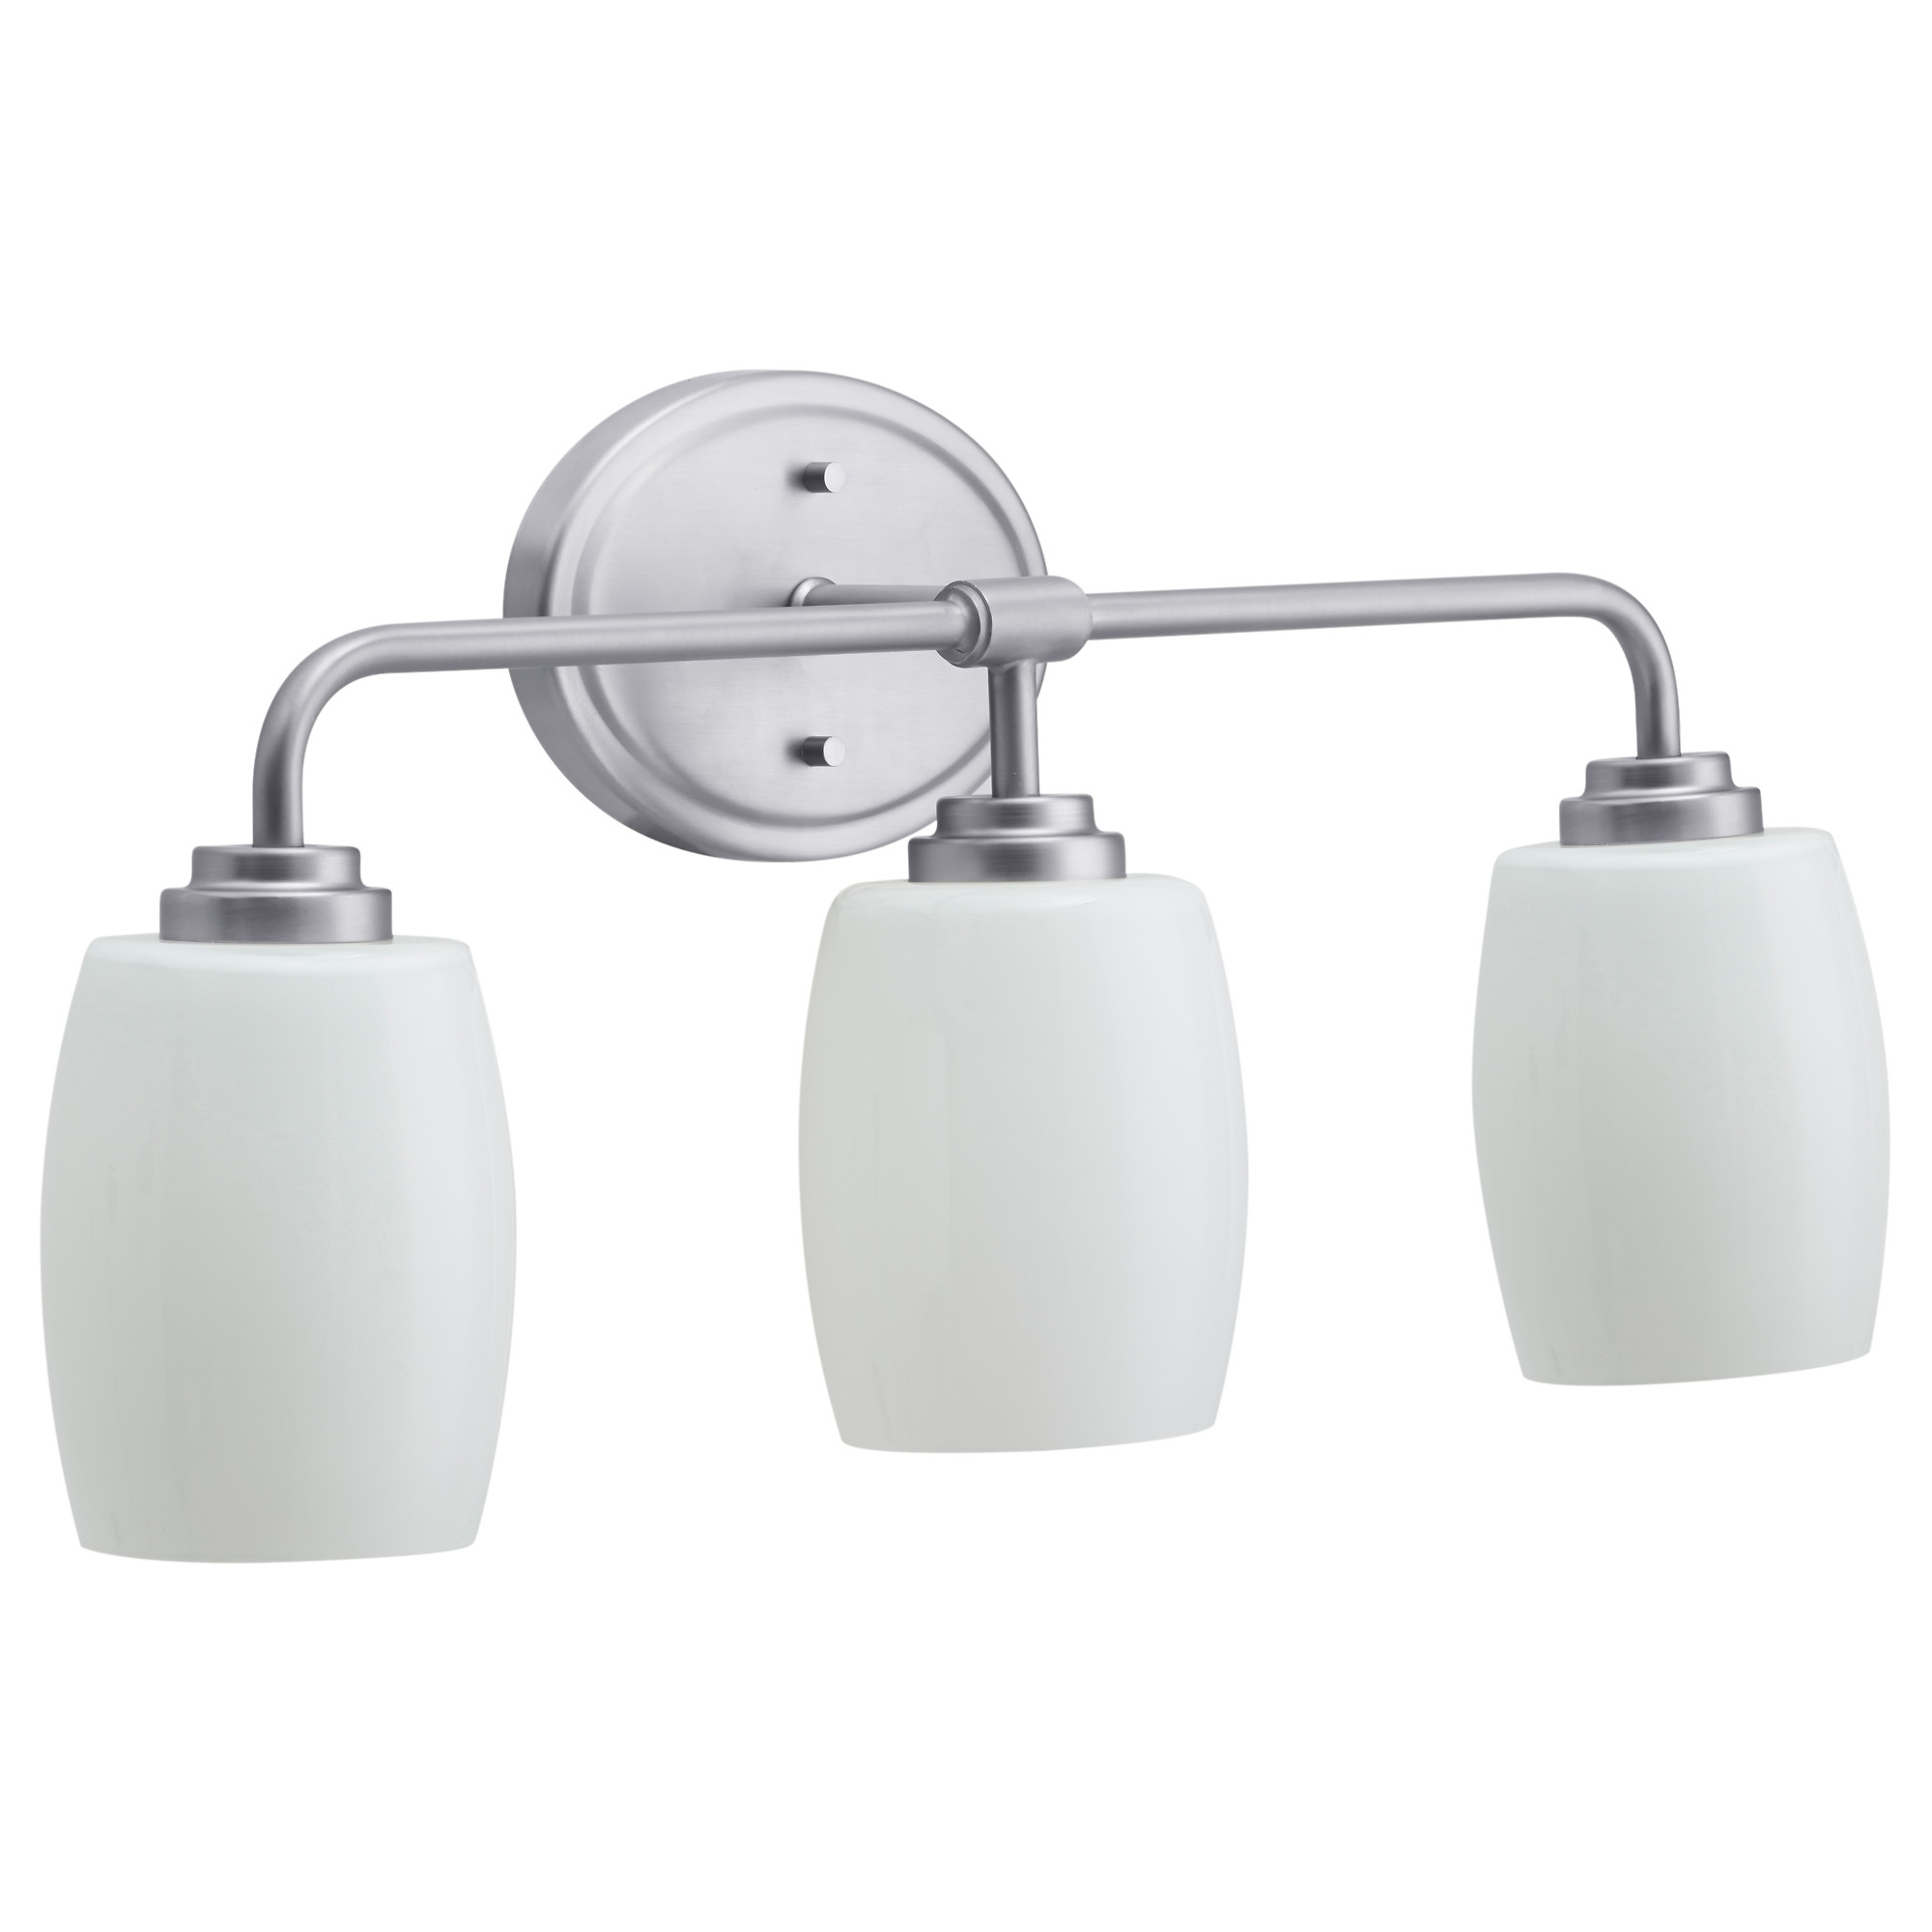 Widely Used Outdoor Wall Lights At Ikea Throughout Vallmora Wall Lamp, 3 Spots – Ikea (View 20 of 20)